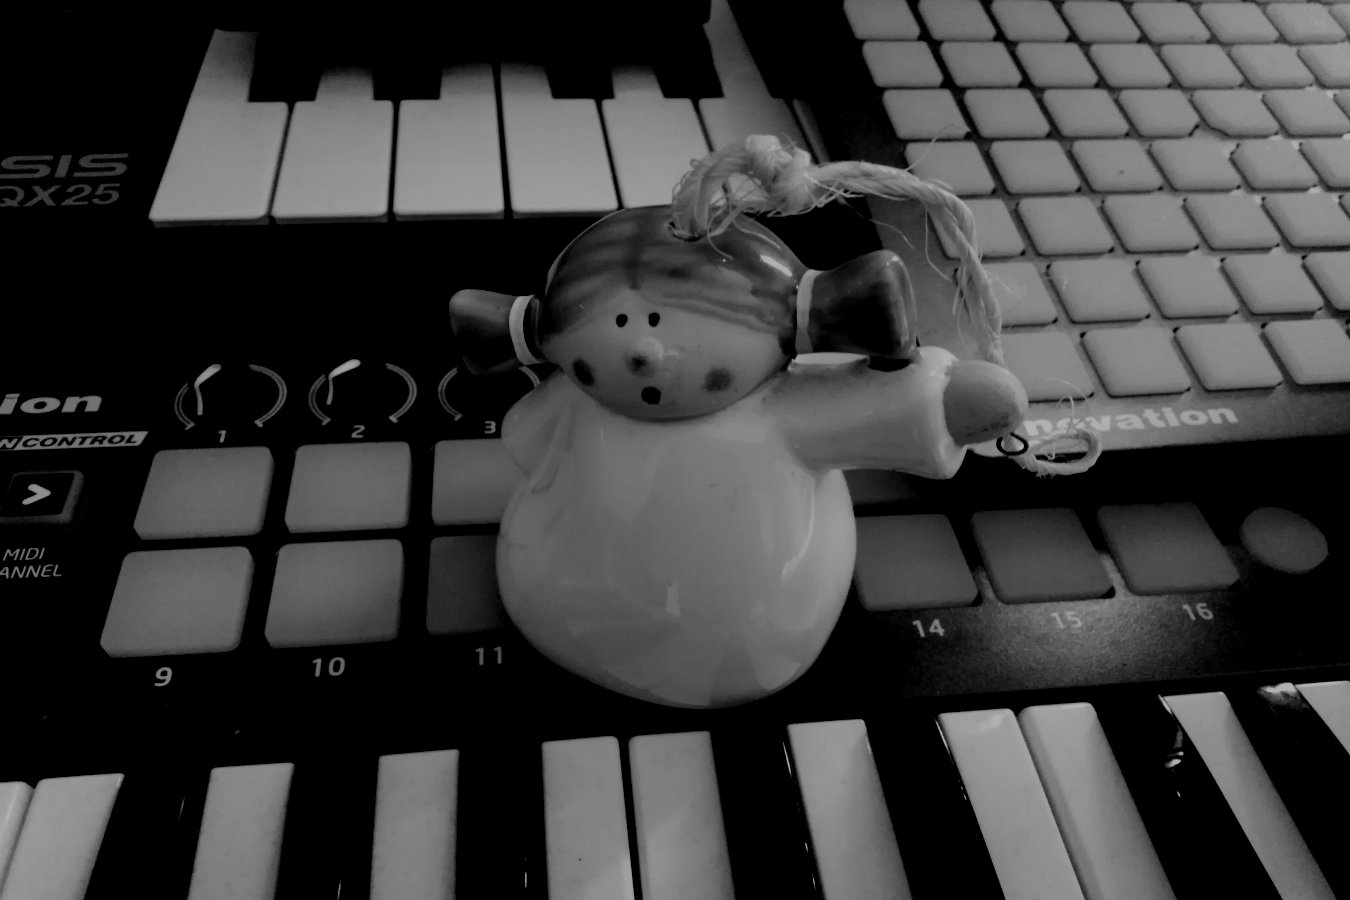 Ceramic Angel Bell One Shots and FX - A ceramic bell I found lying around my home. I recorded the sounds and made some drum one shots and effects.2nd April 2019